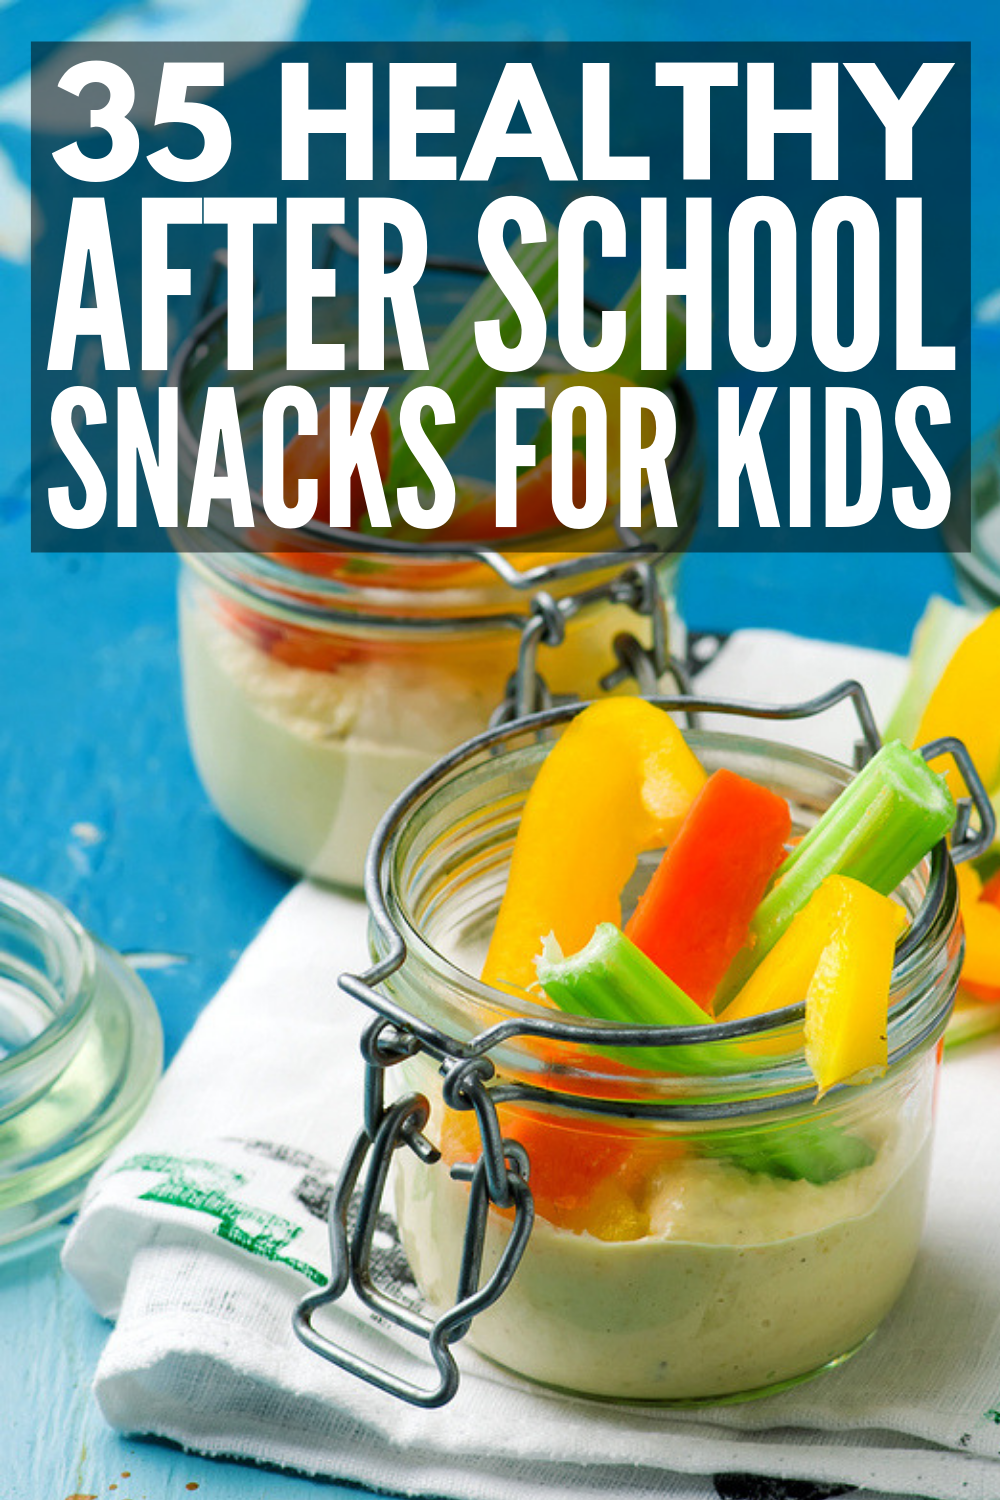 Easy and Delicious: 35 Healthy After School Snacks for Kids